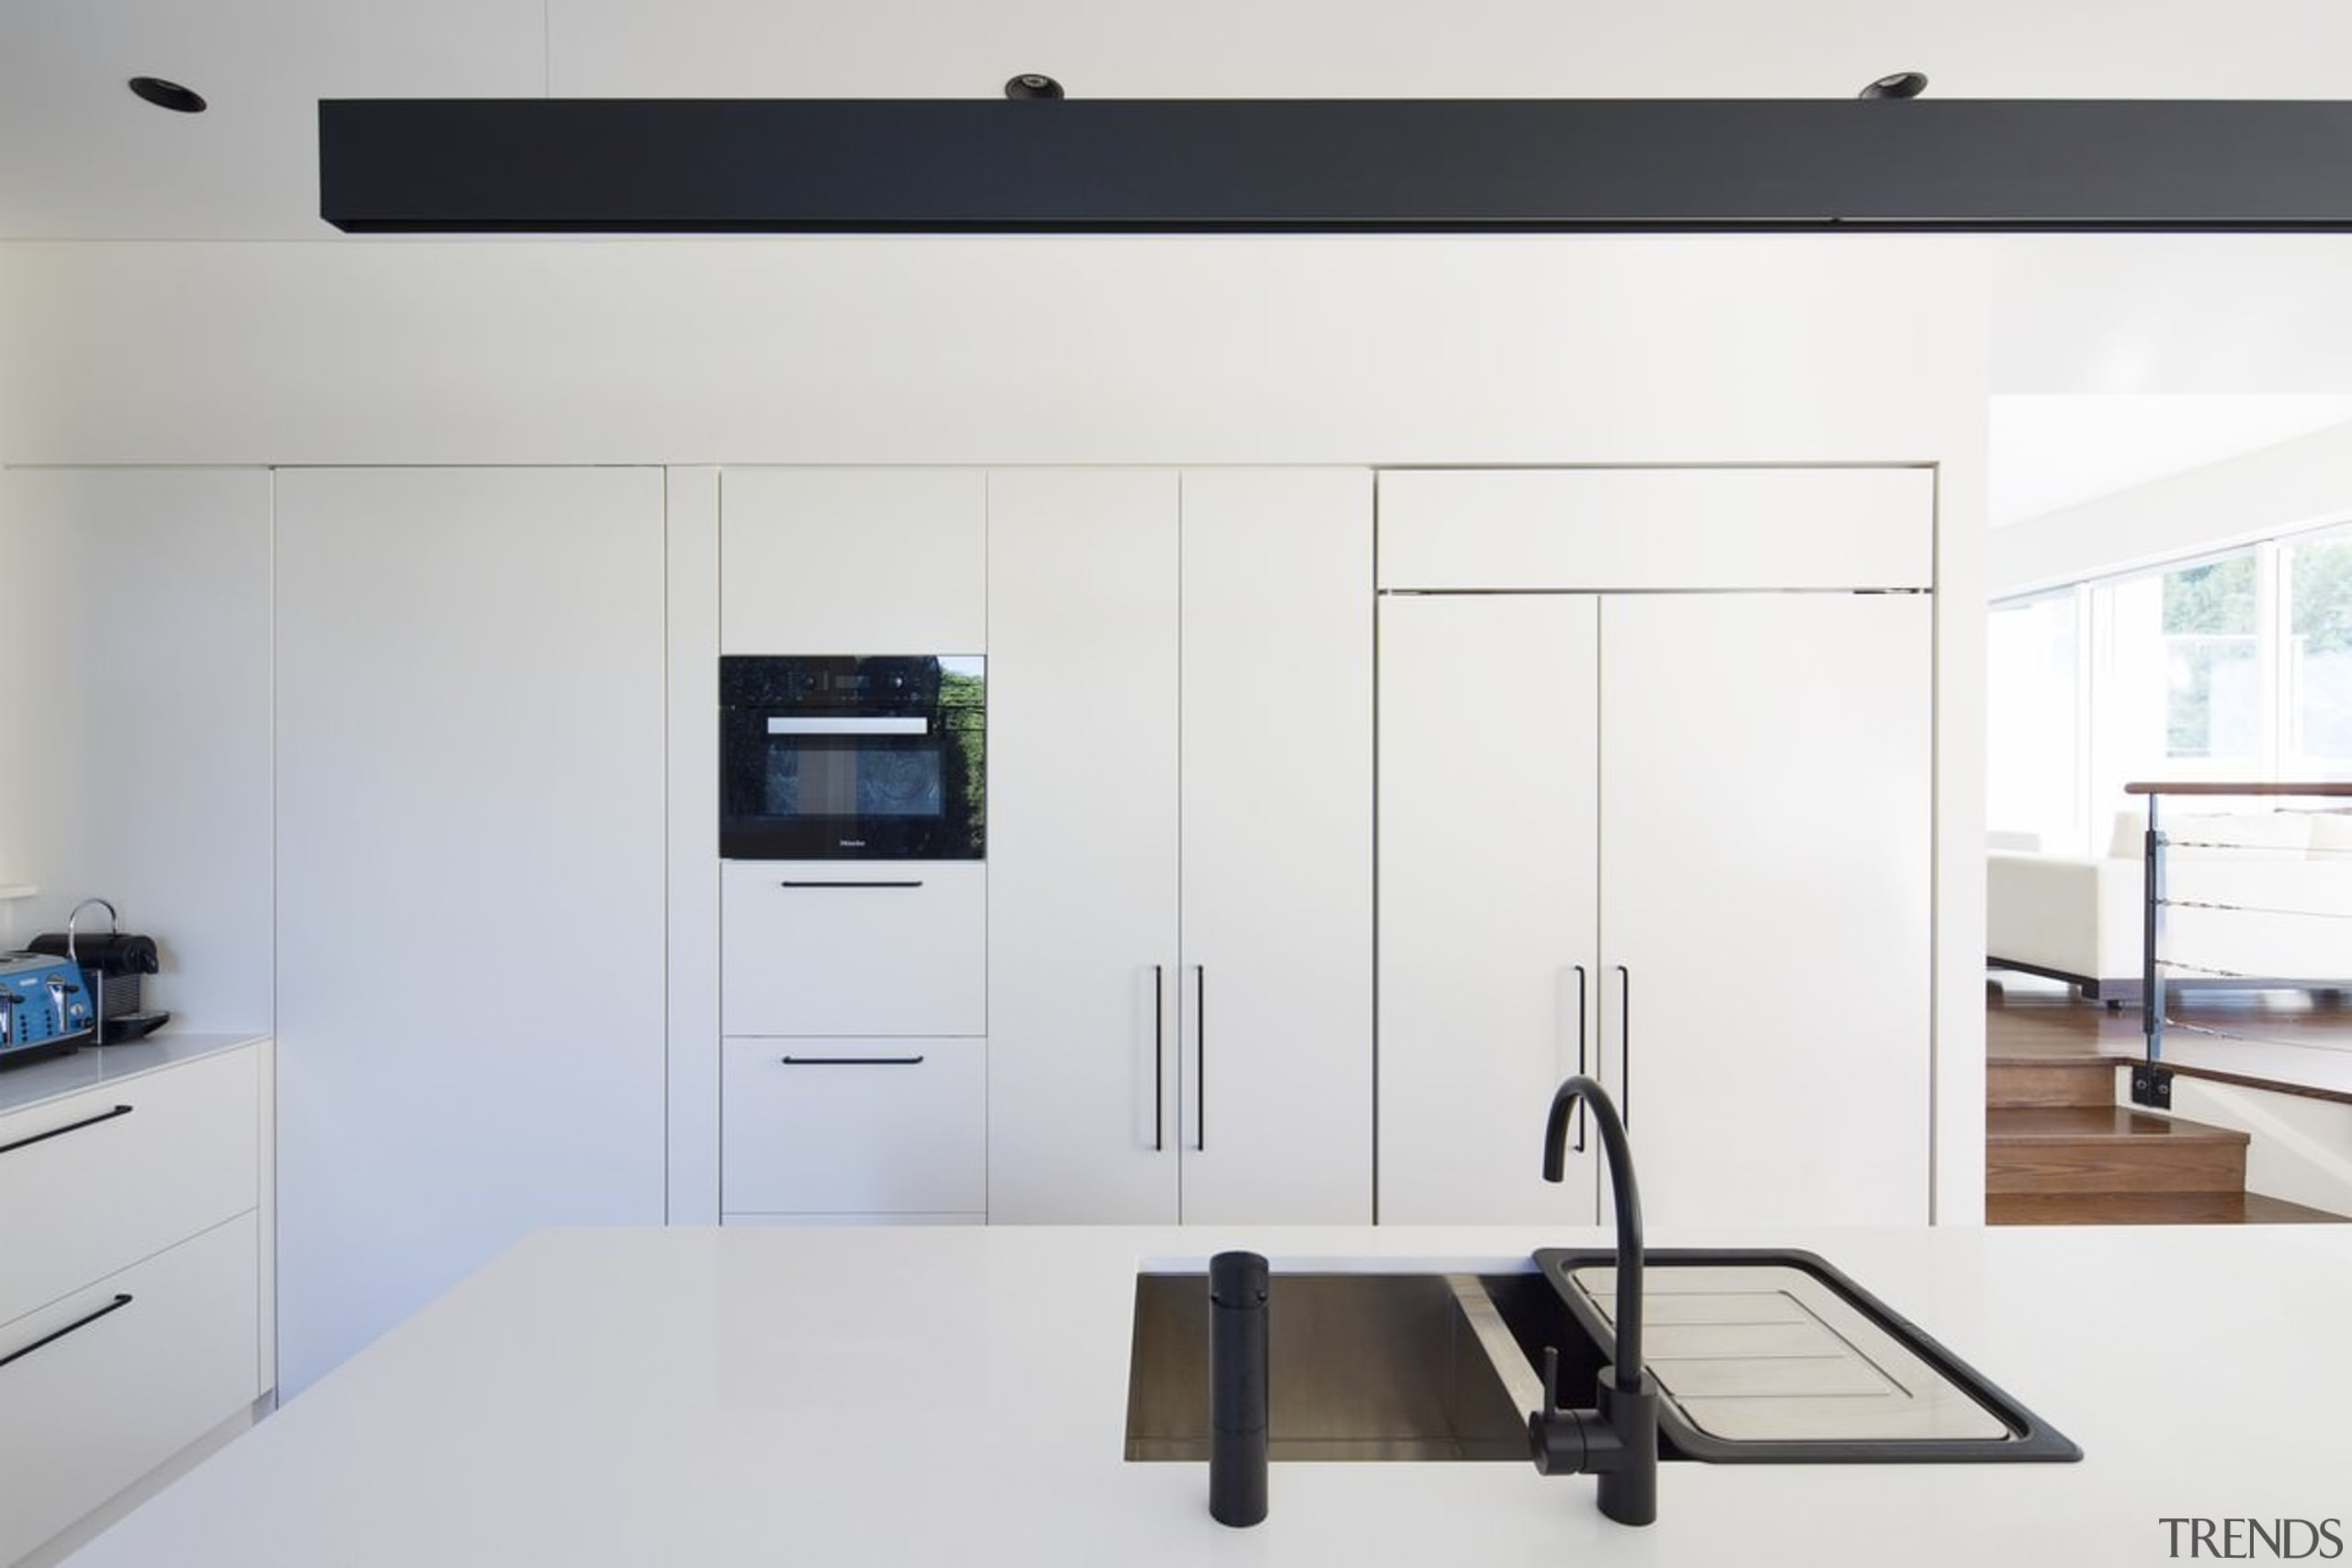 This kitchen features black tapware, which stands out home appliance, interior design, product design, white, gray